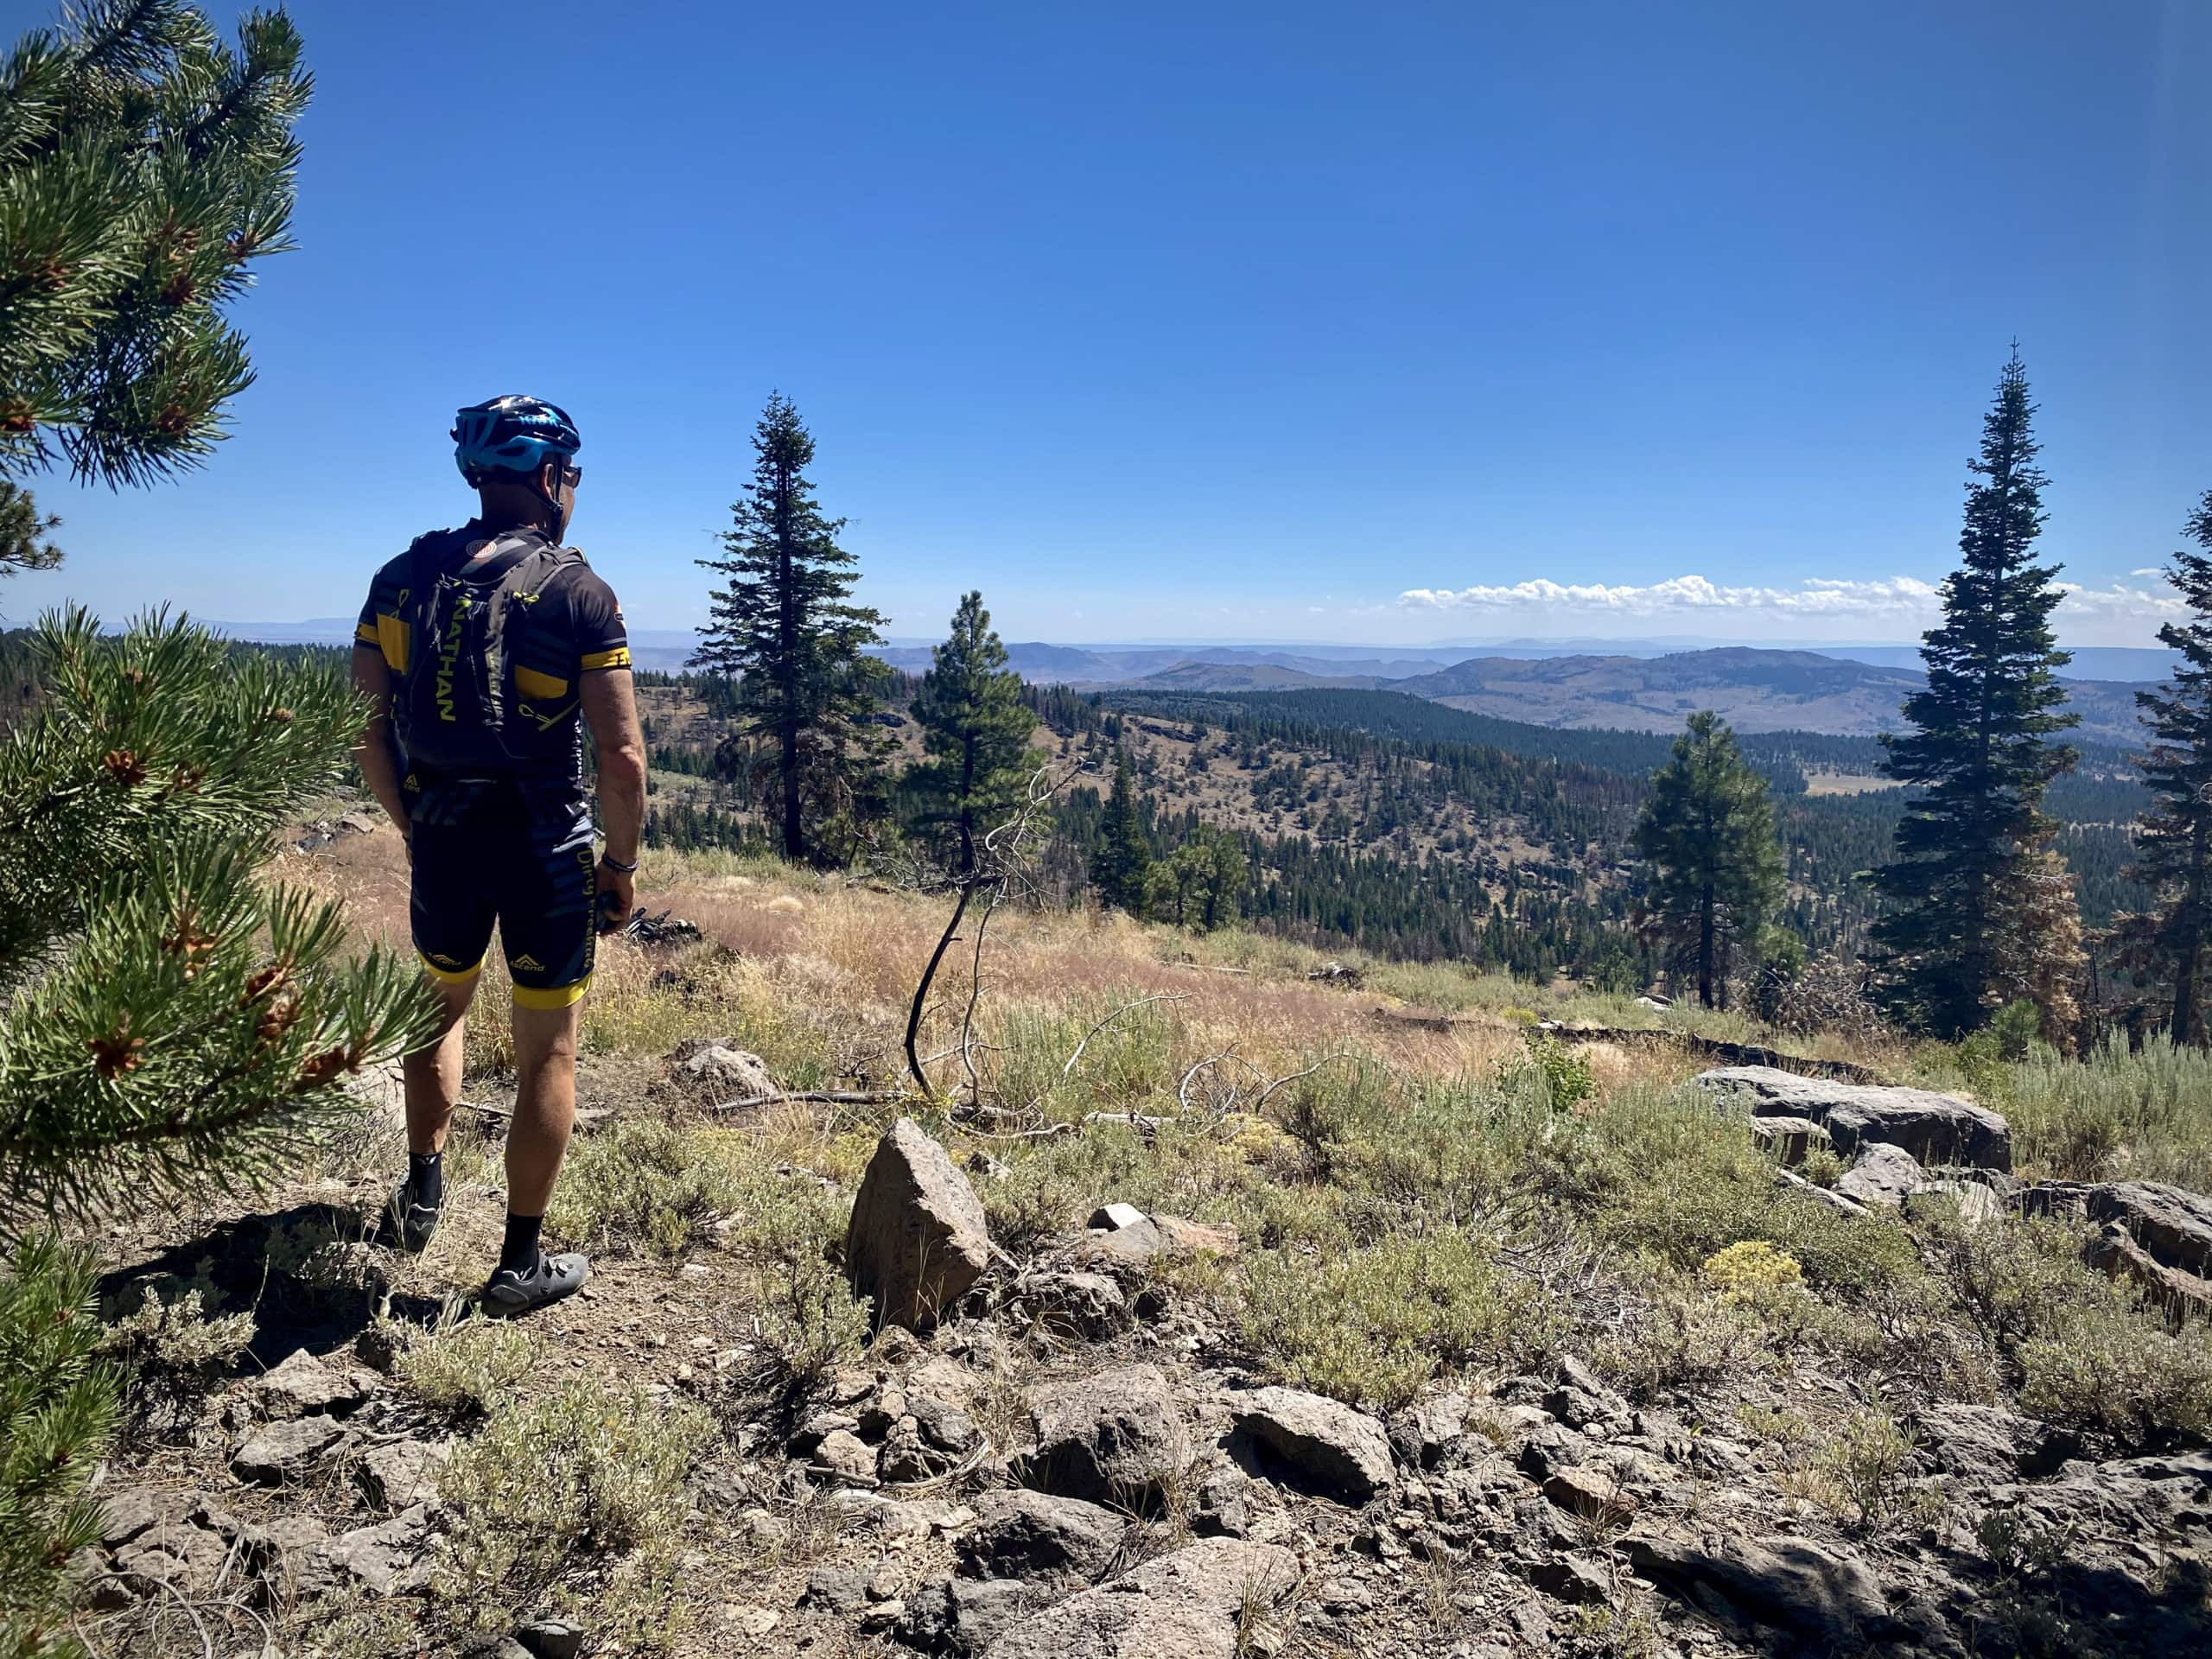 Cyclist taking in the open and distant views from high up in the Fremont National Forest.